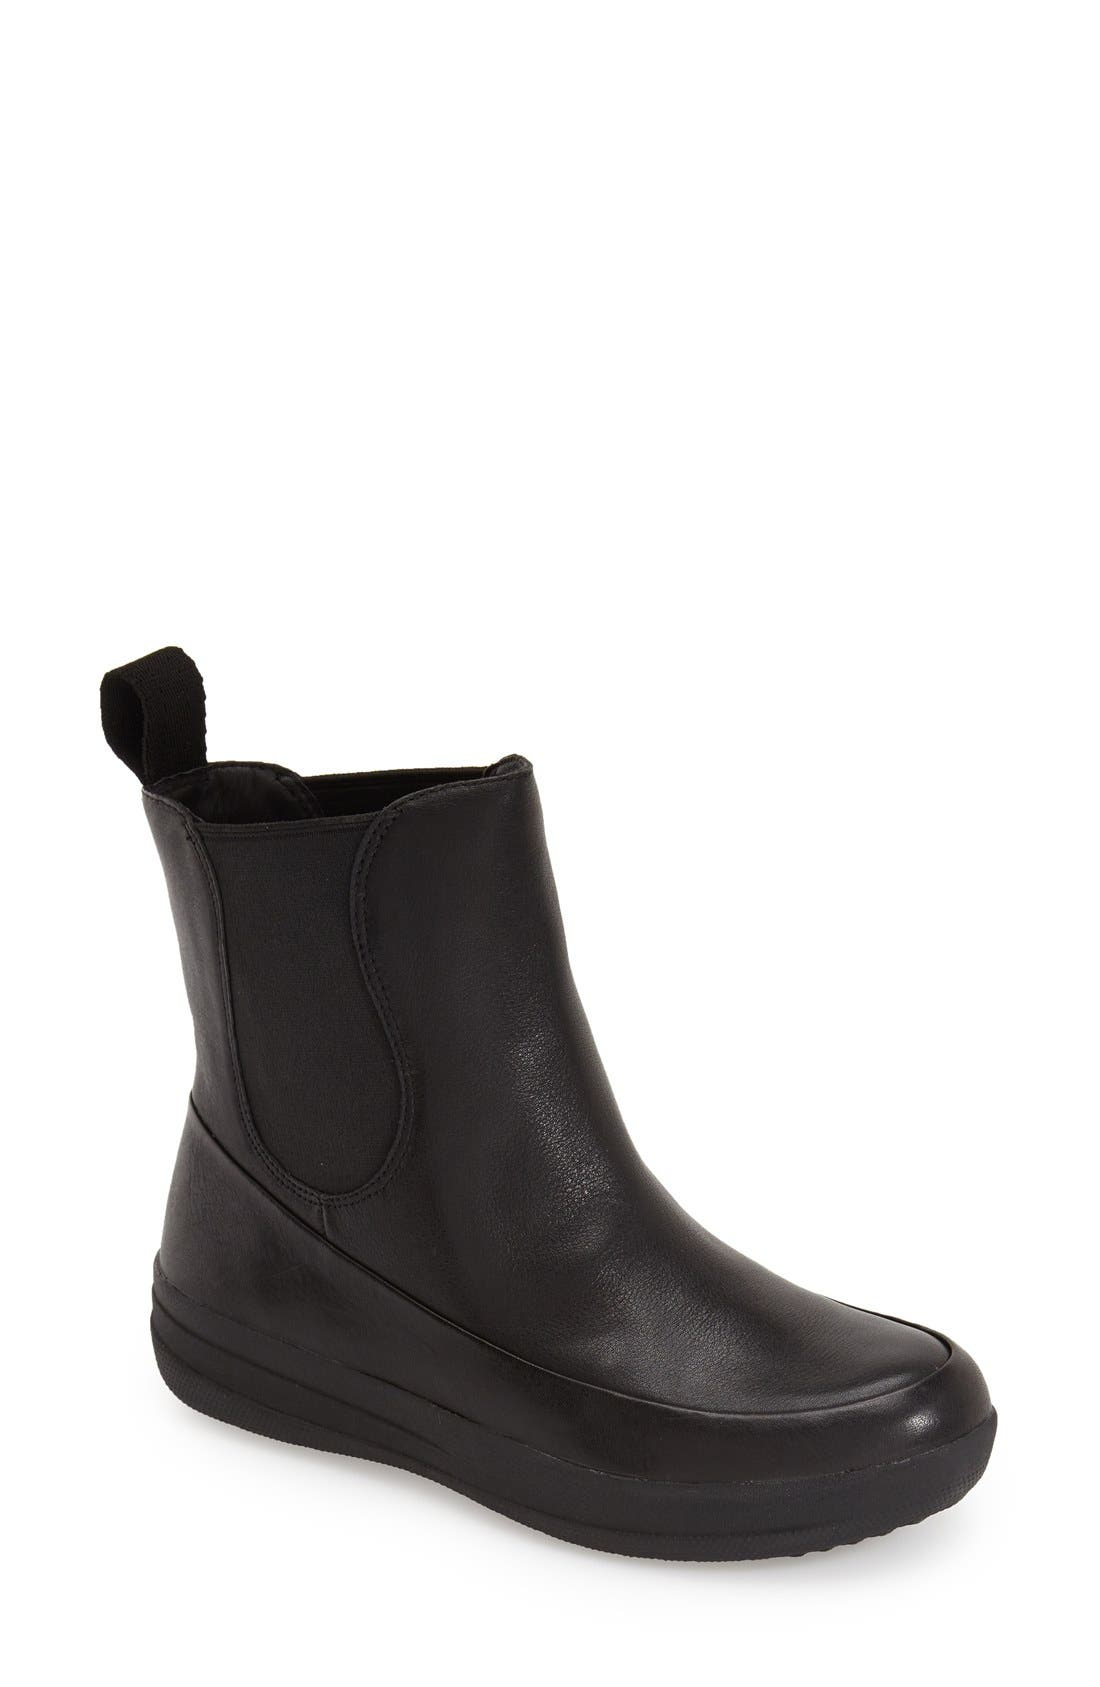 'Lux' Chelsea Boot,                             Main thumbnail 1, color,                             009